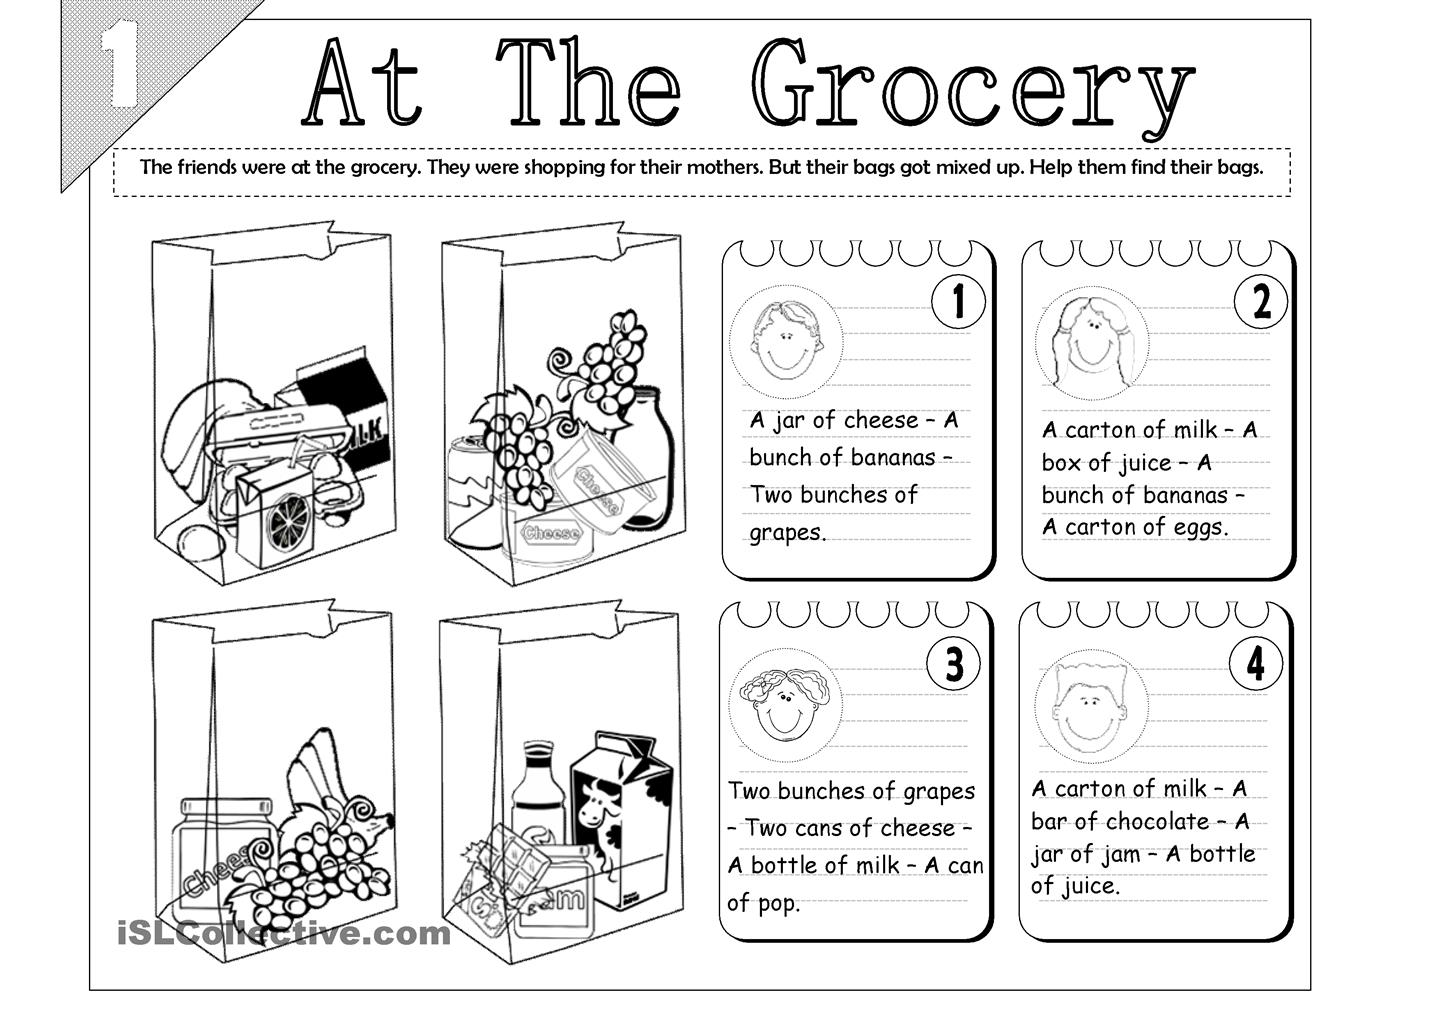 full_1100_at_the_grocery_food_quantity_2pages_1